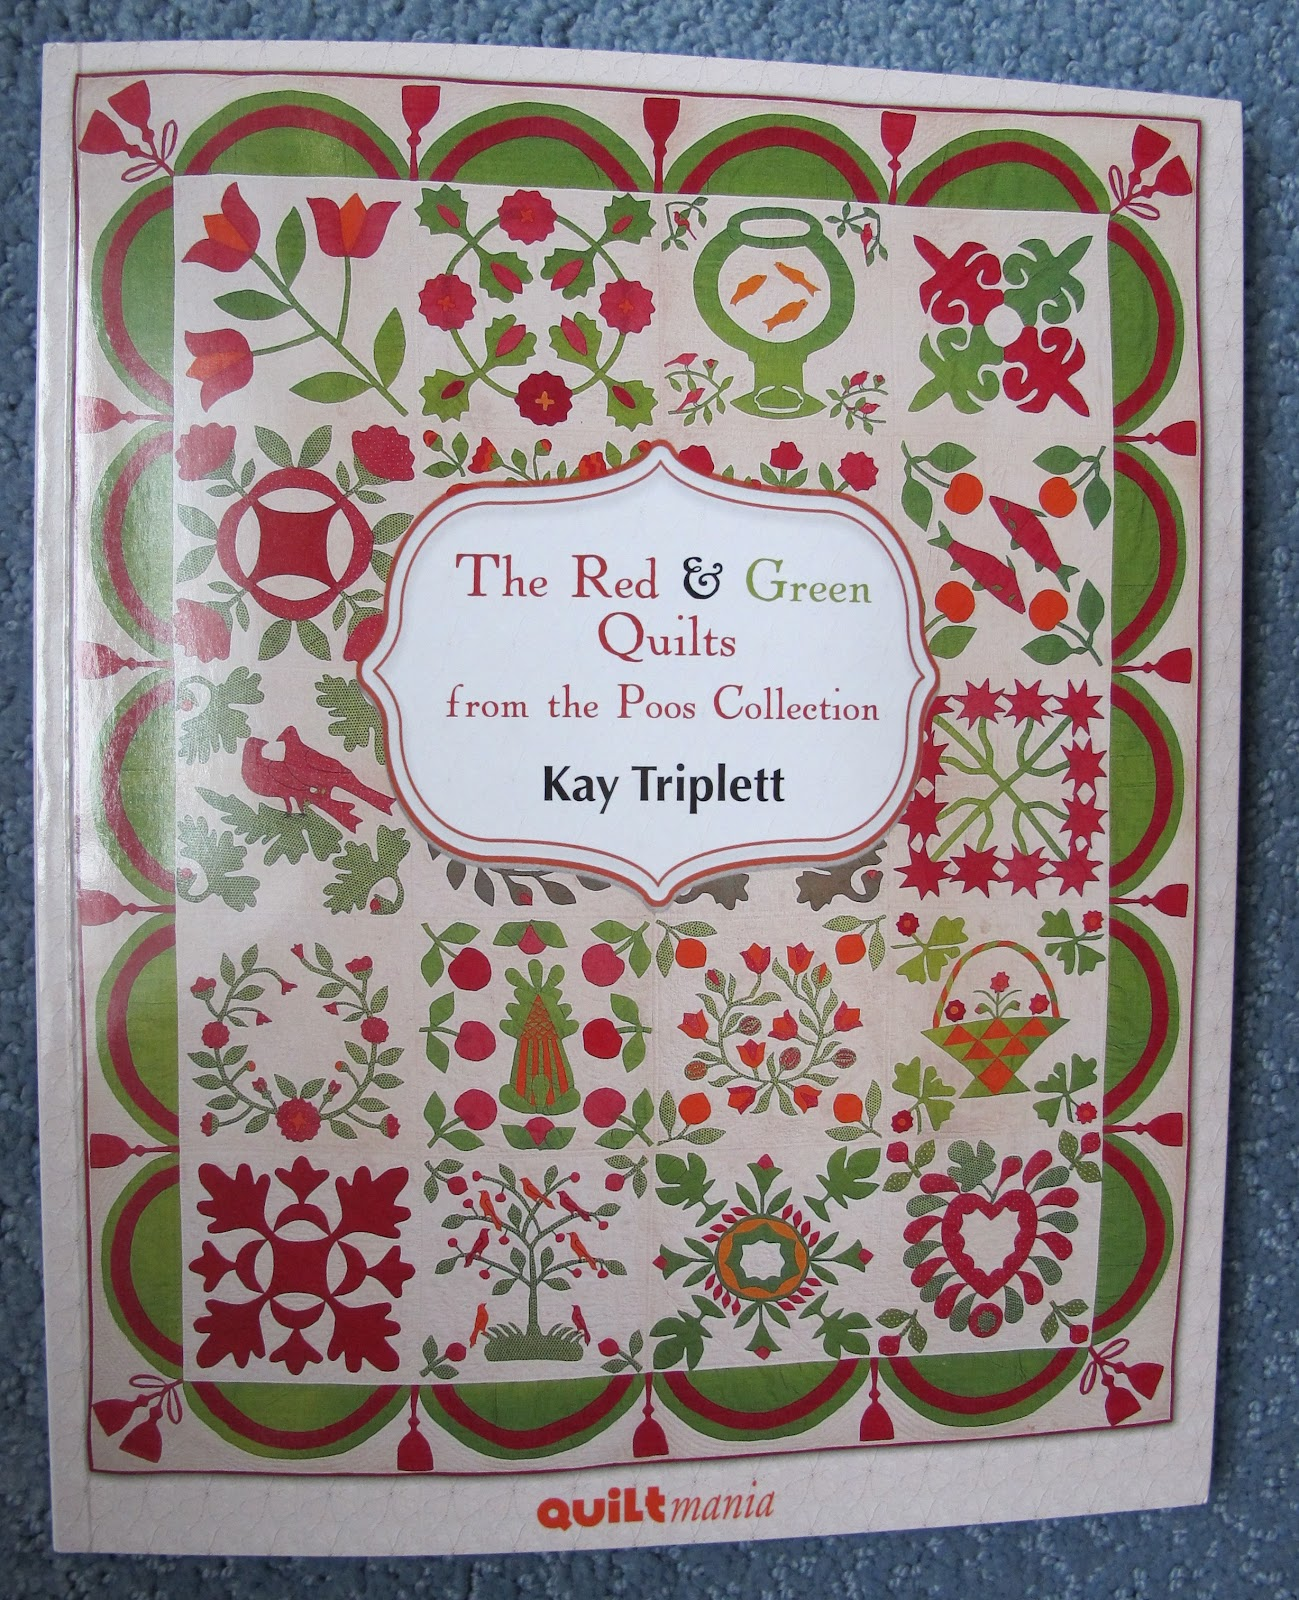 Baltimore Garden Quilts: The Red and Green Poos Collection - Book ... : red and green quilts - Adamdwight.com